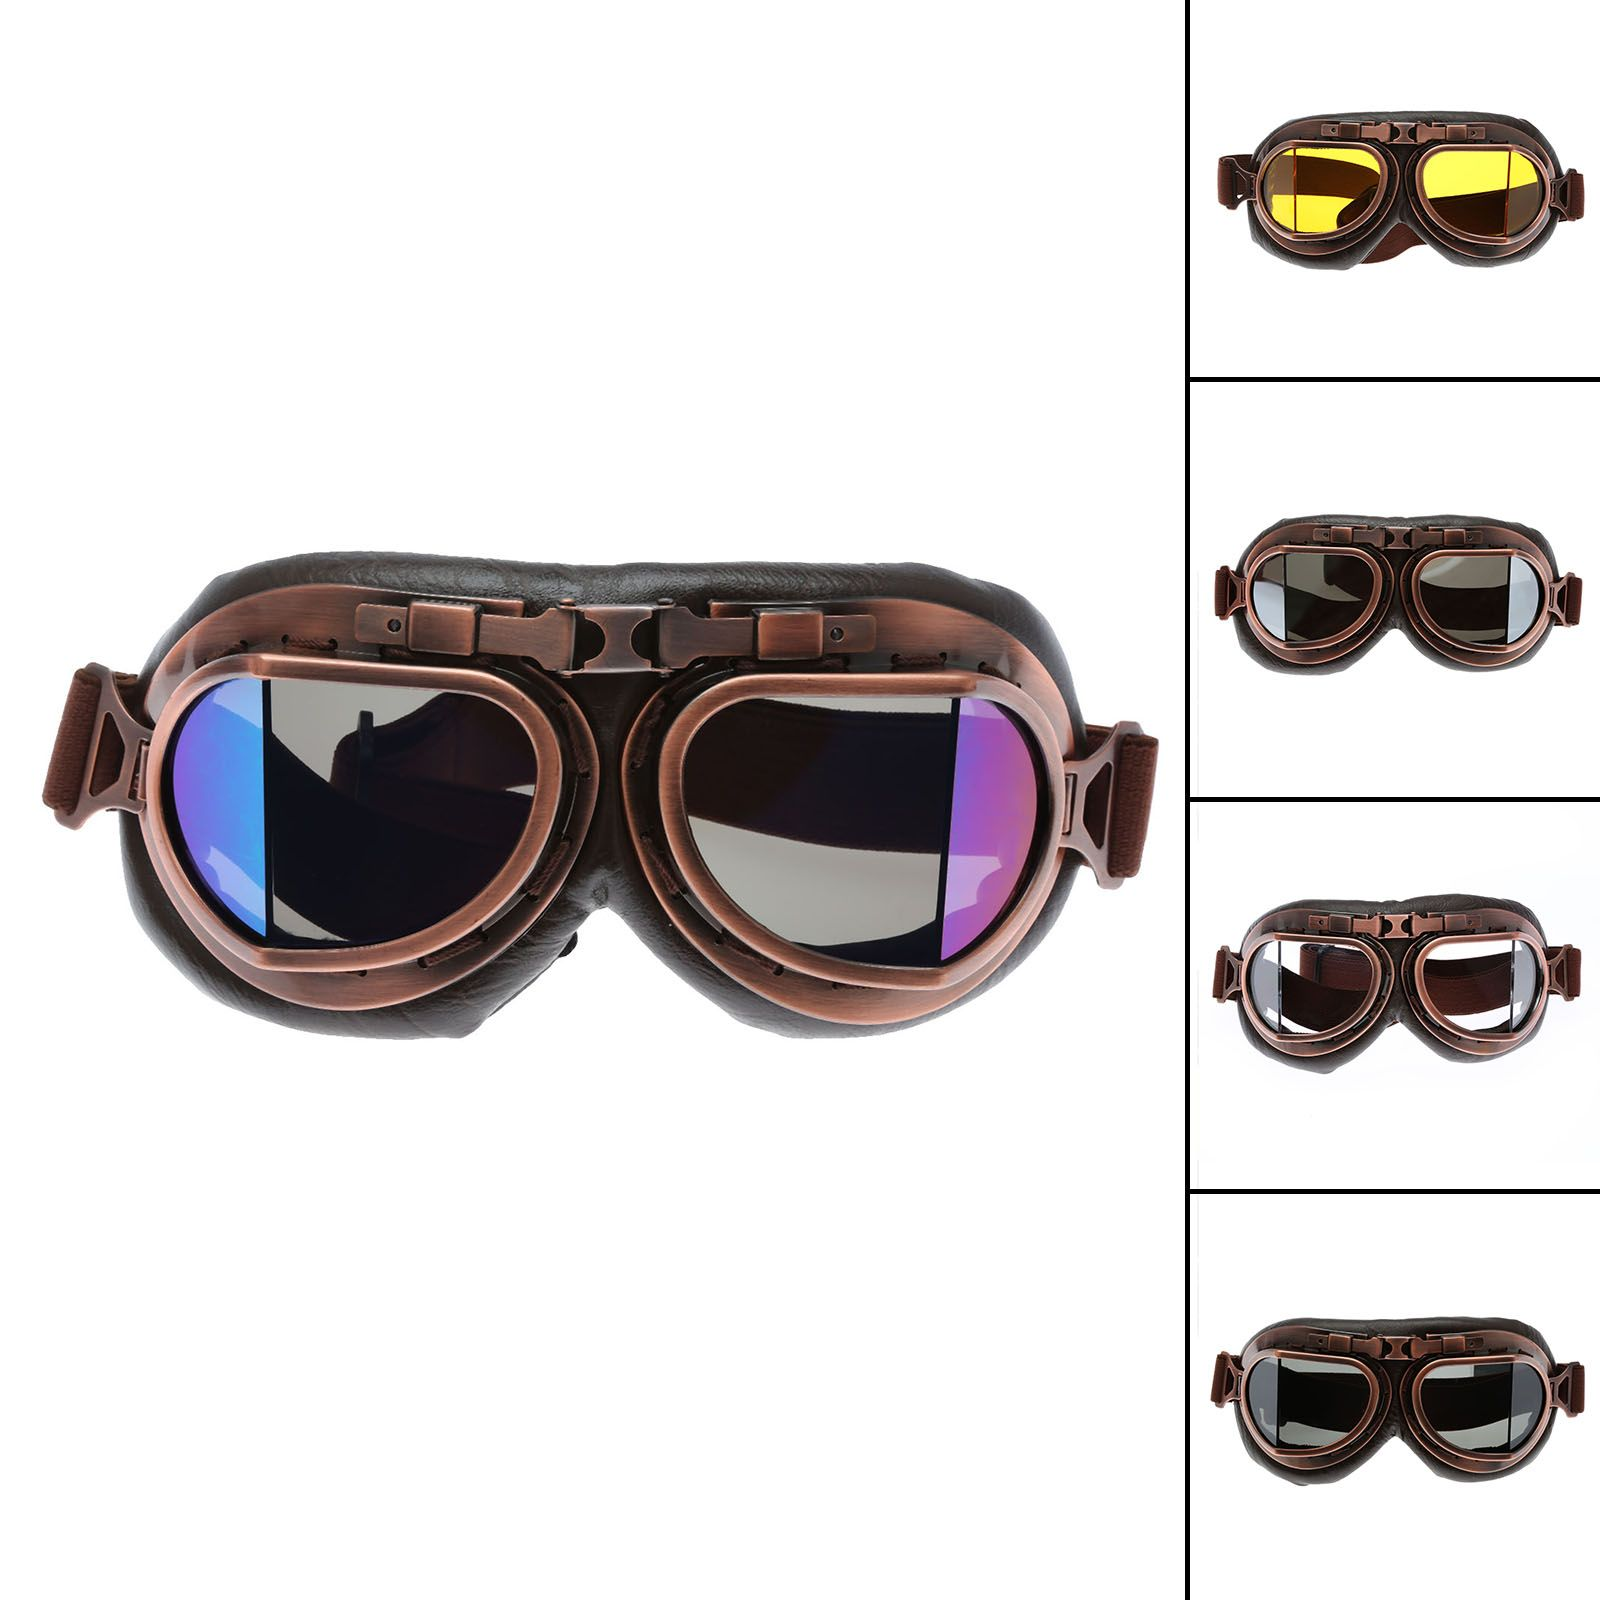 Motorcycle Goggles Glasses Vintage <font><b>Motocross</b></font> Classic Goggles Retro Aviator Pilot Cruiser Steampunk ATV Bike UV Protection Copper